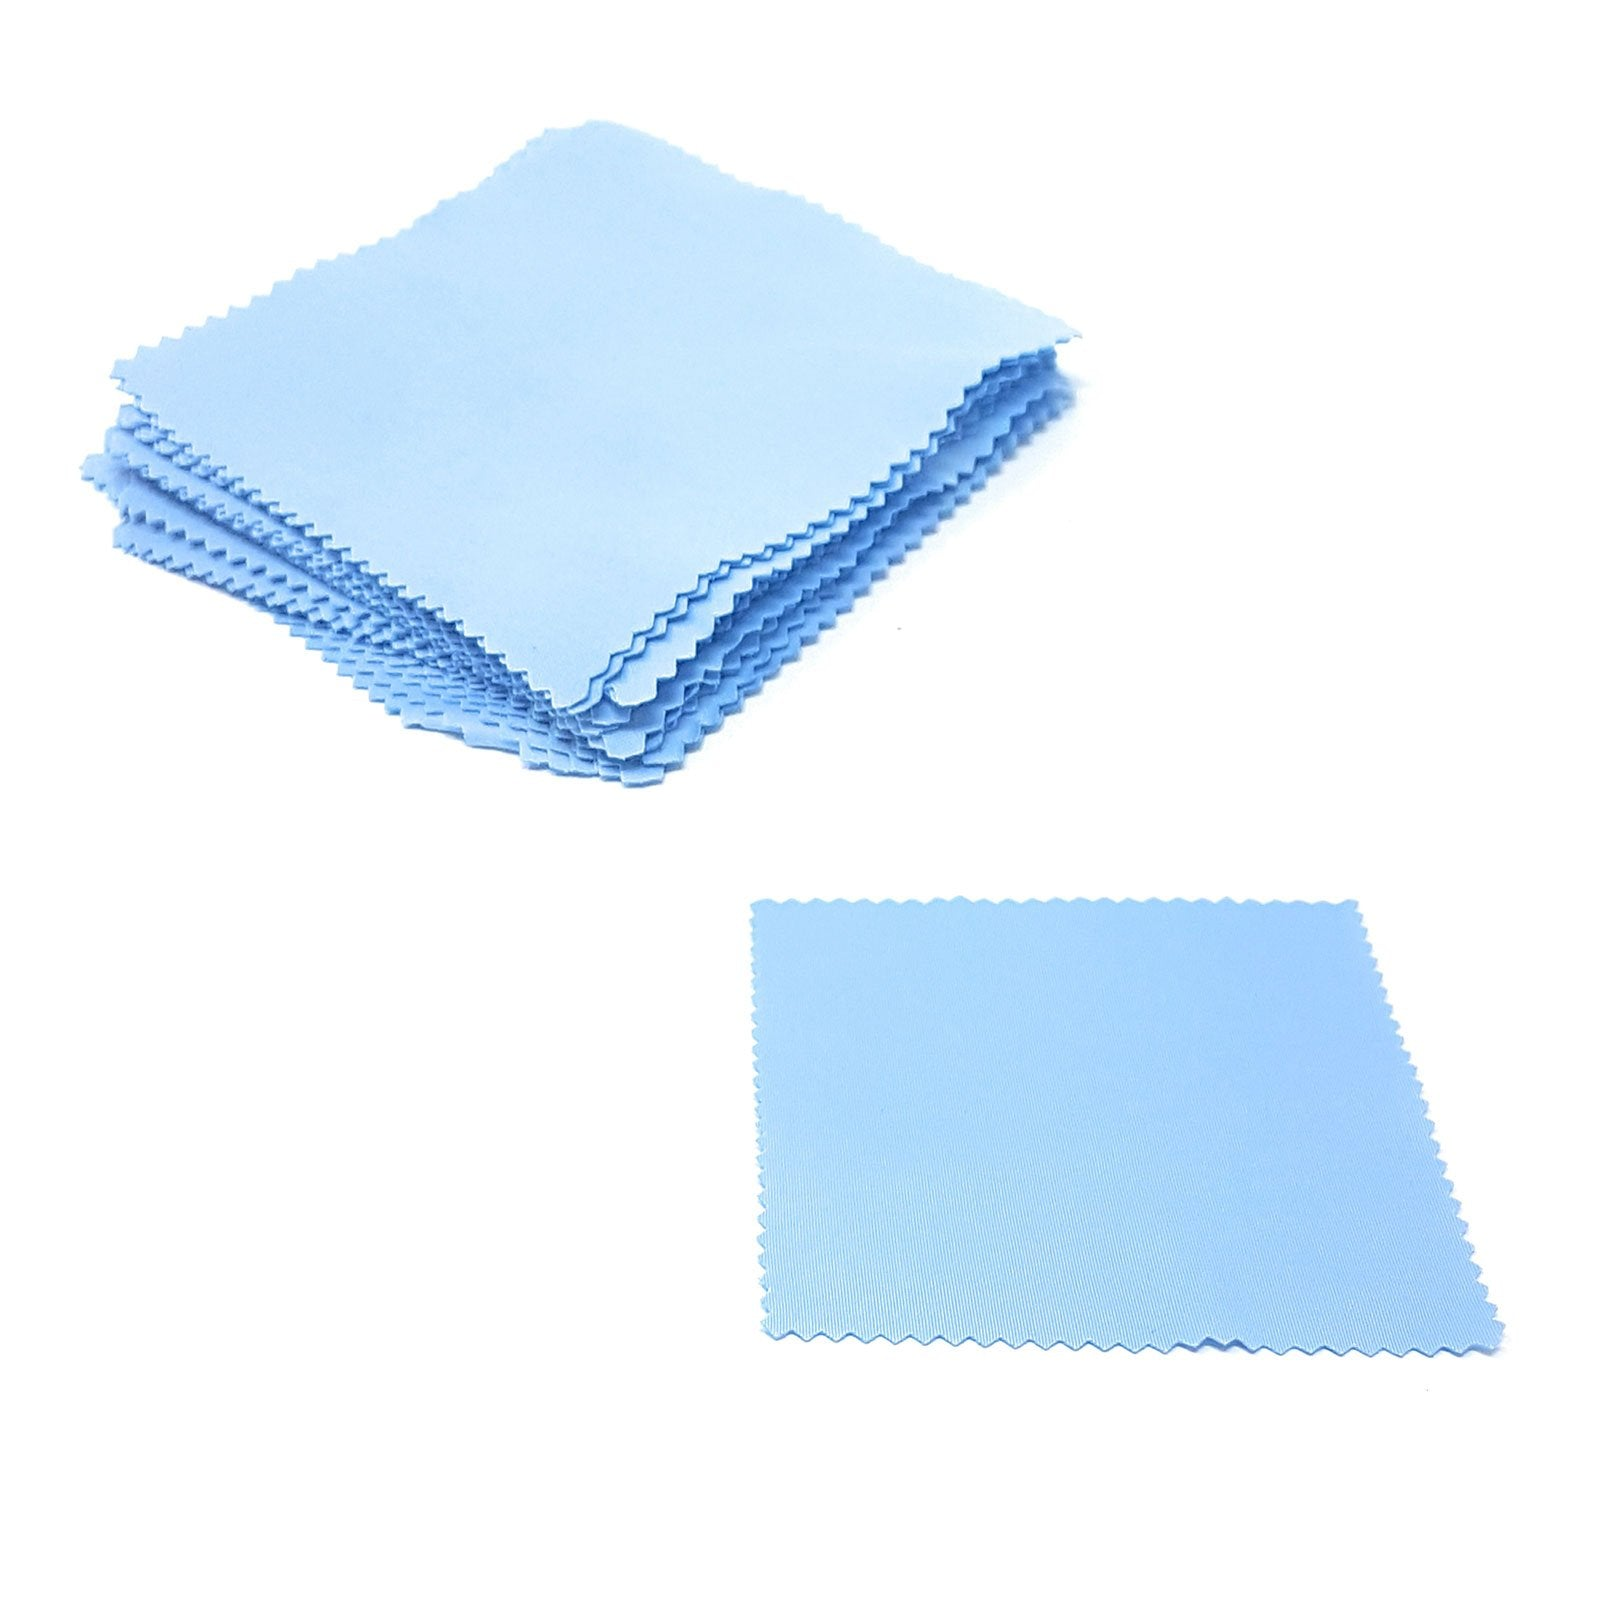 Wholesale Lens Cleaning Cloths - Sky Blue